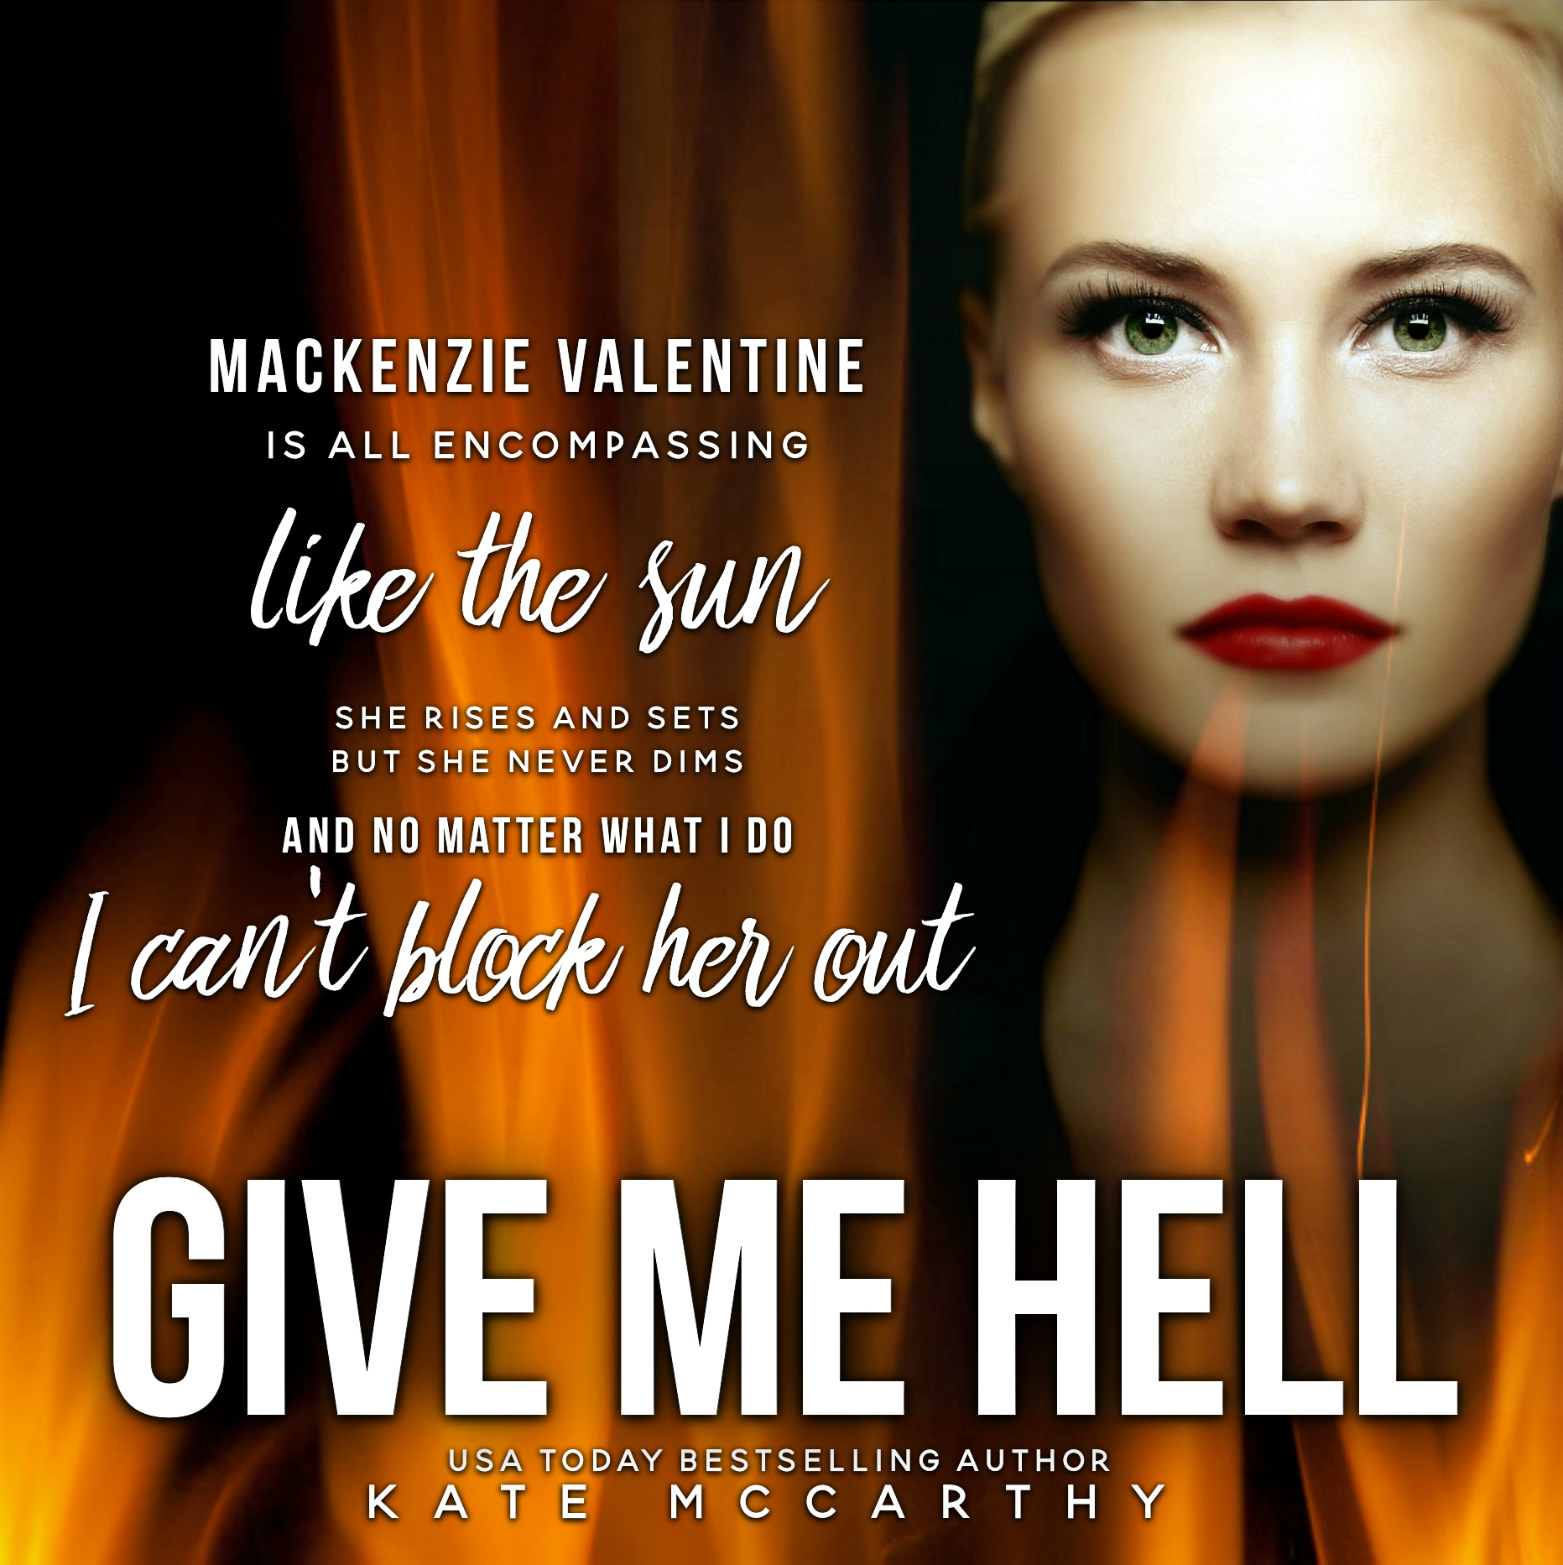 Give Me Hell Teaser 1